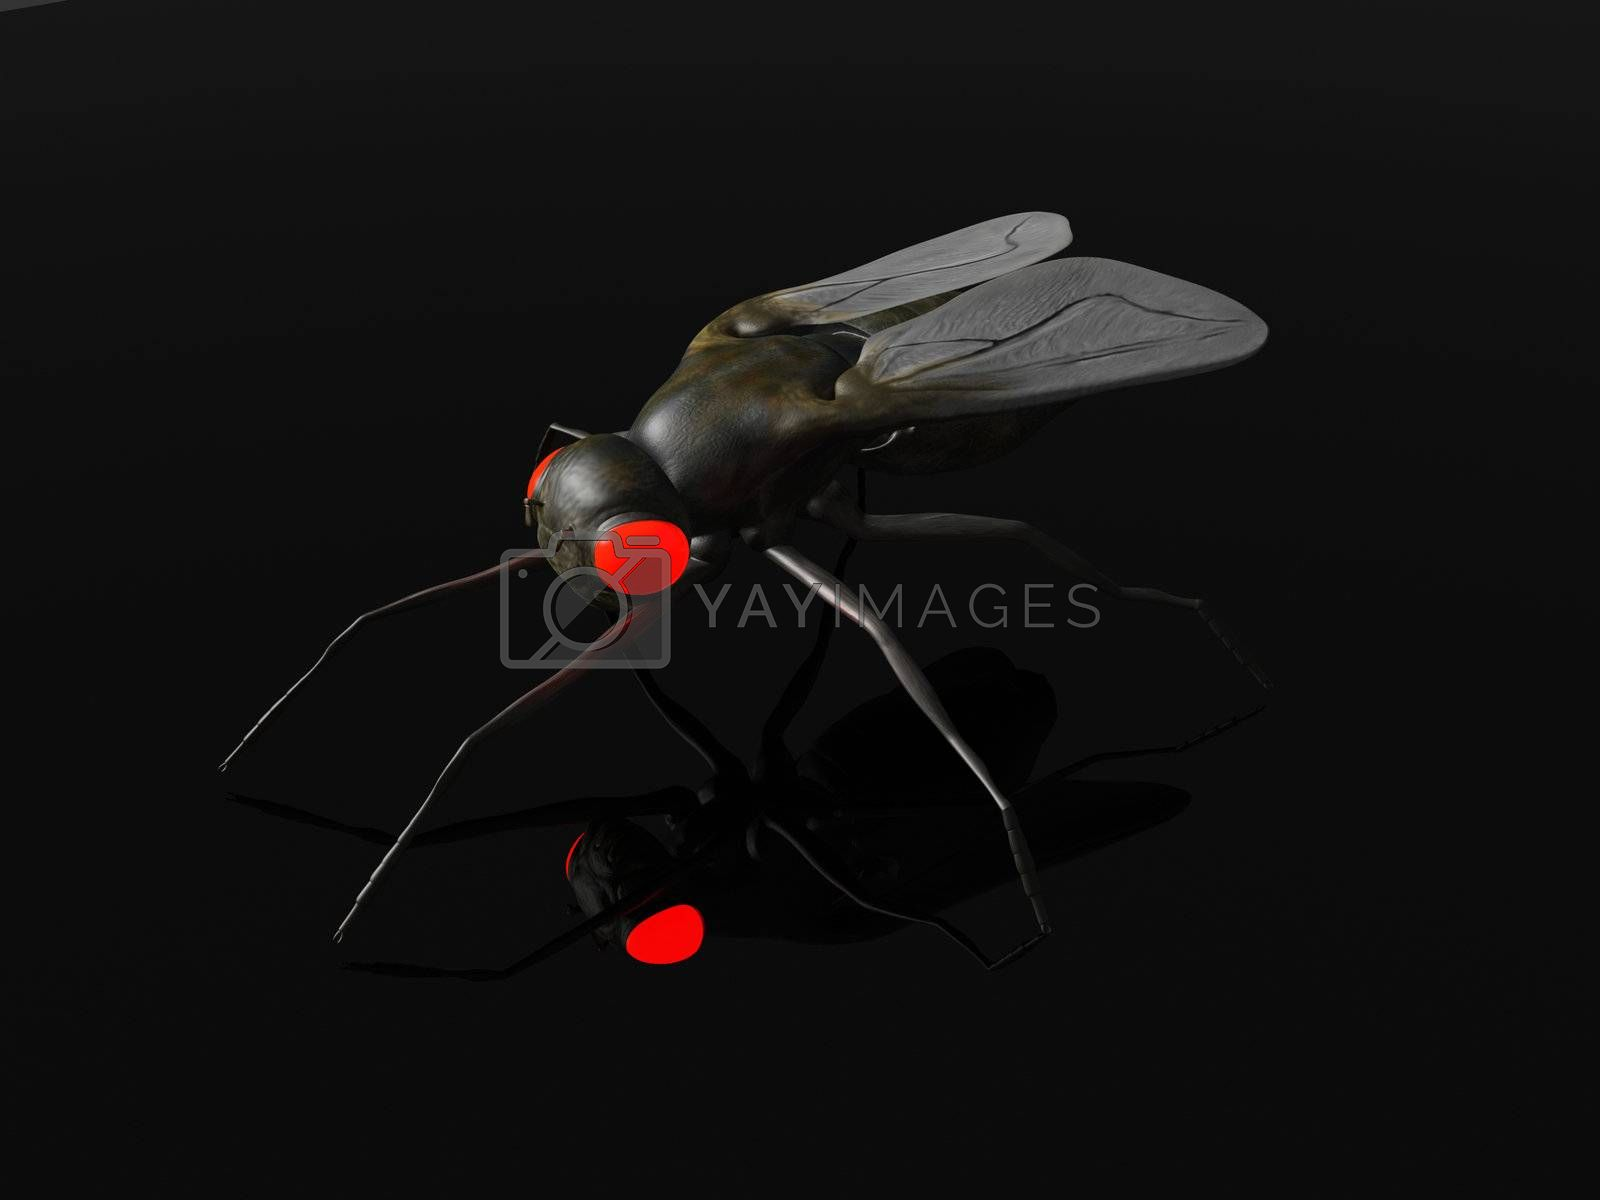 3D rendered Illustration. An evil Fly in the Dark.